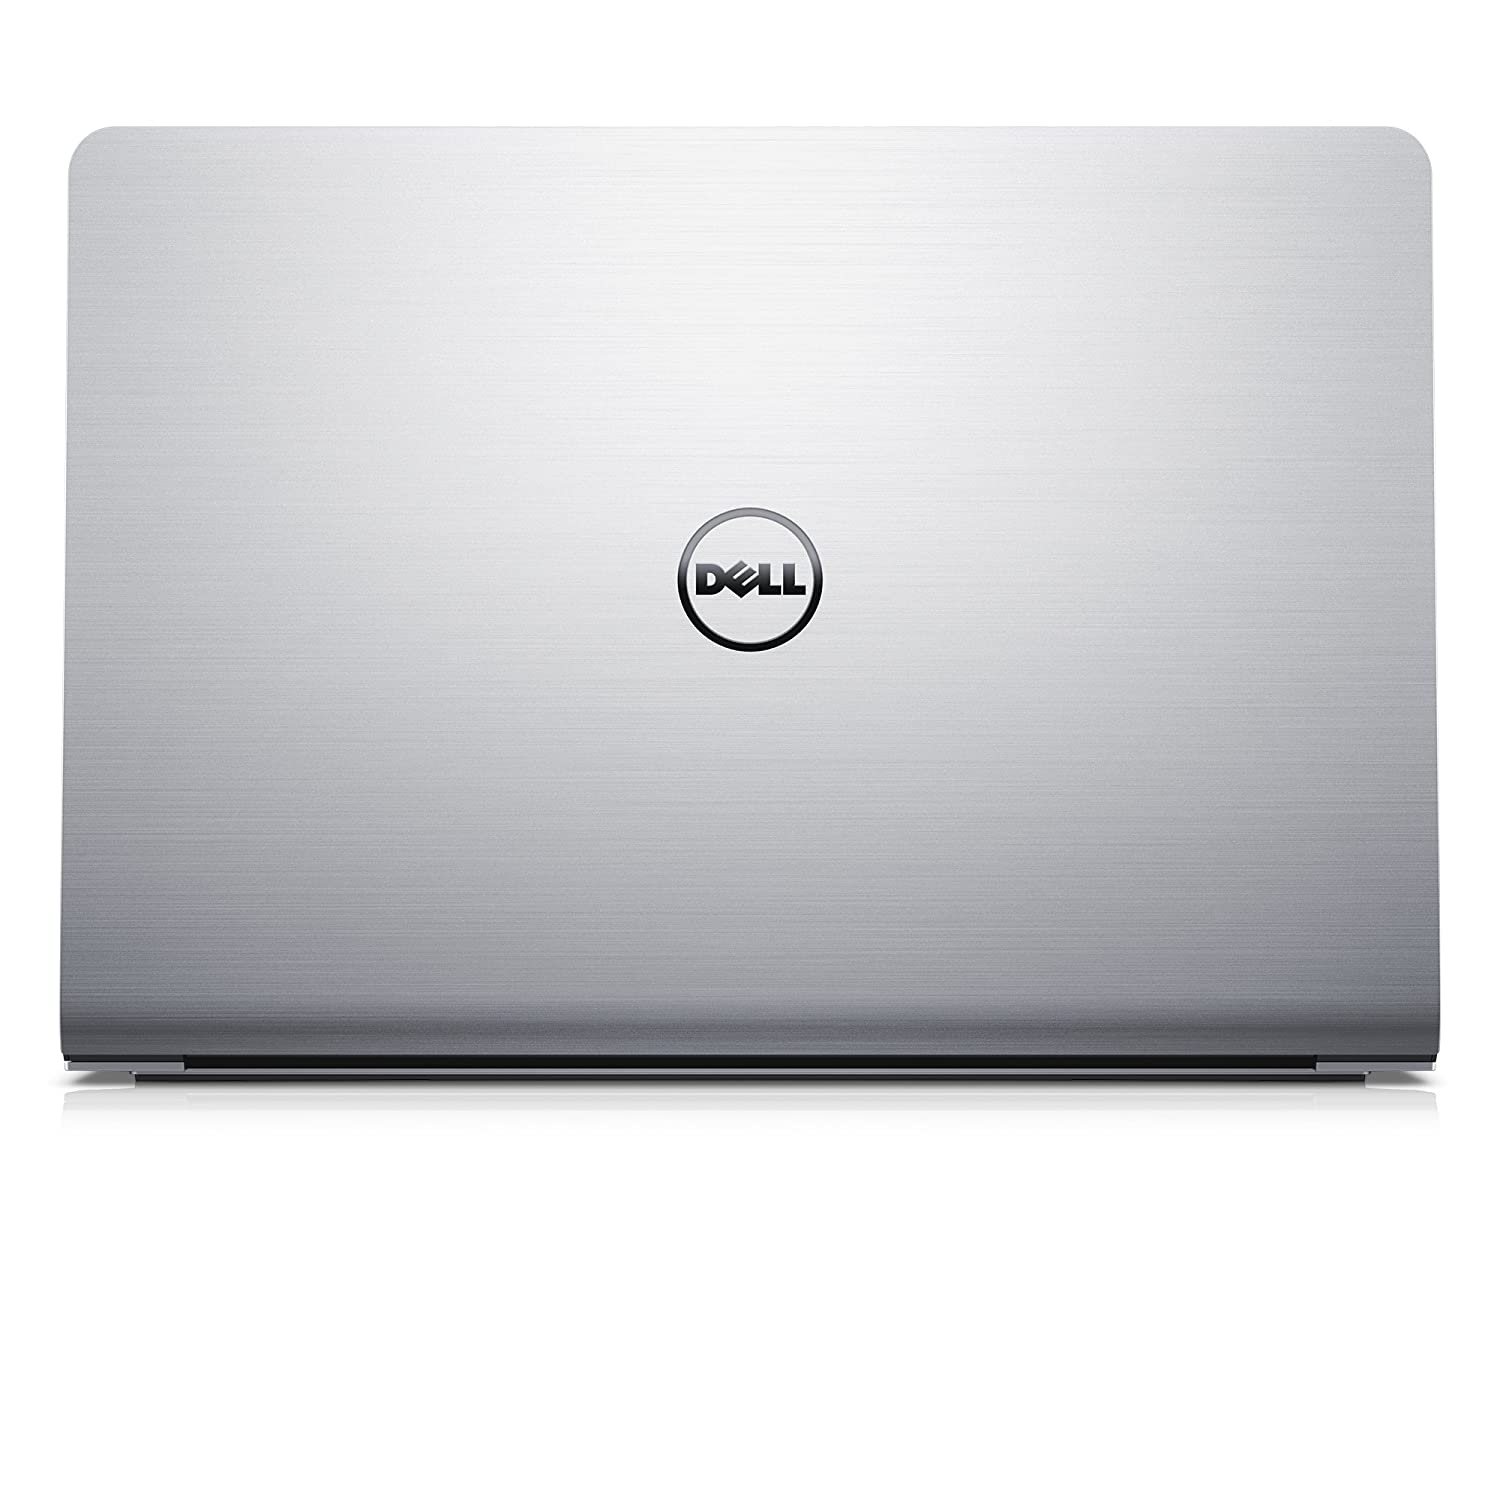 Dell-Inspiron-15-5000-Series-i5545-2500sLV-15-Inch-Laptop-Silver-Non-Touch-